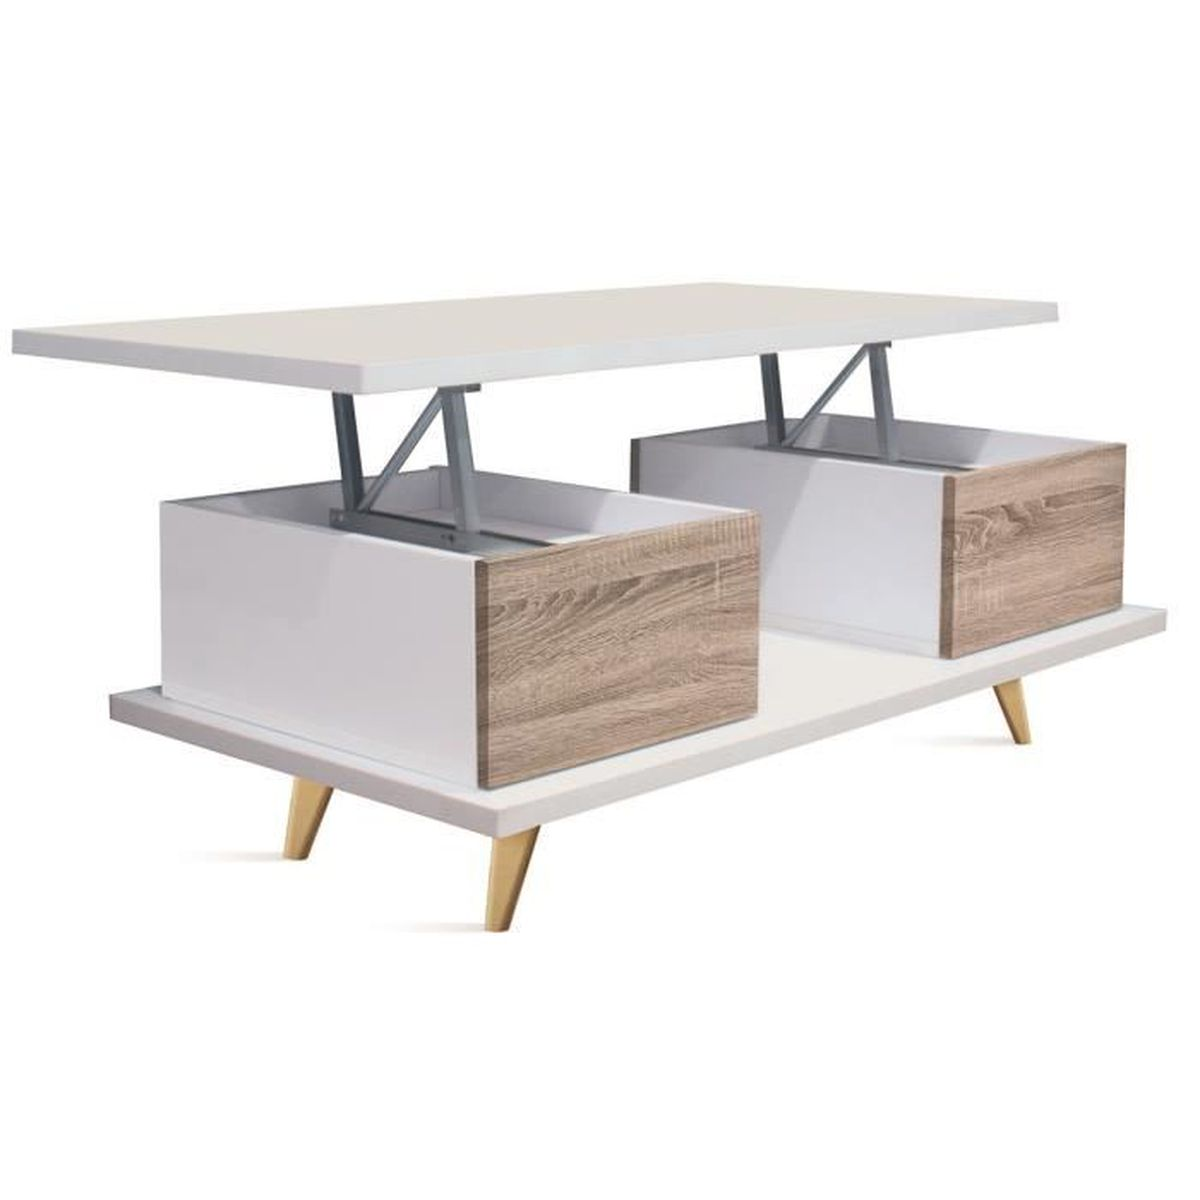 Table basse relevable en bois coloris blanc cambrian for Table de salon escamotable